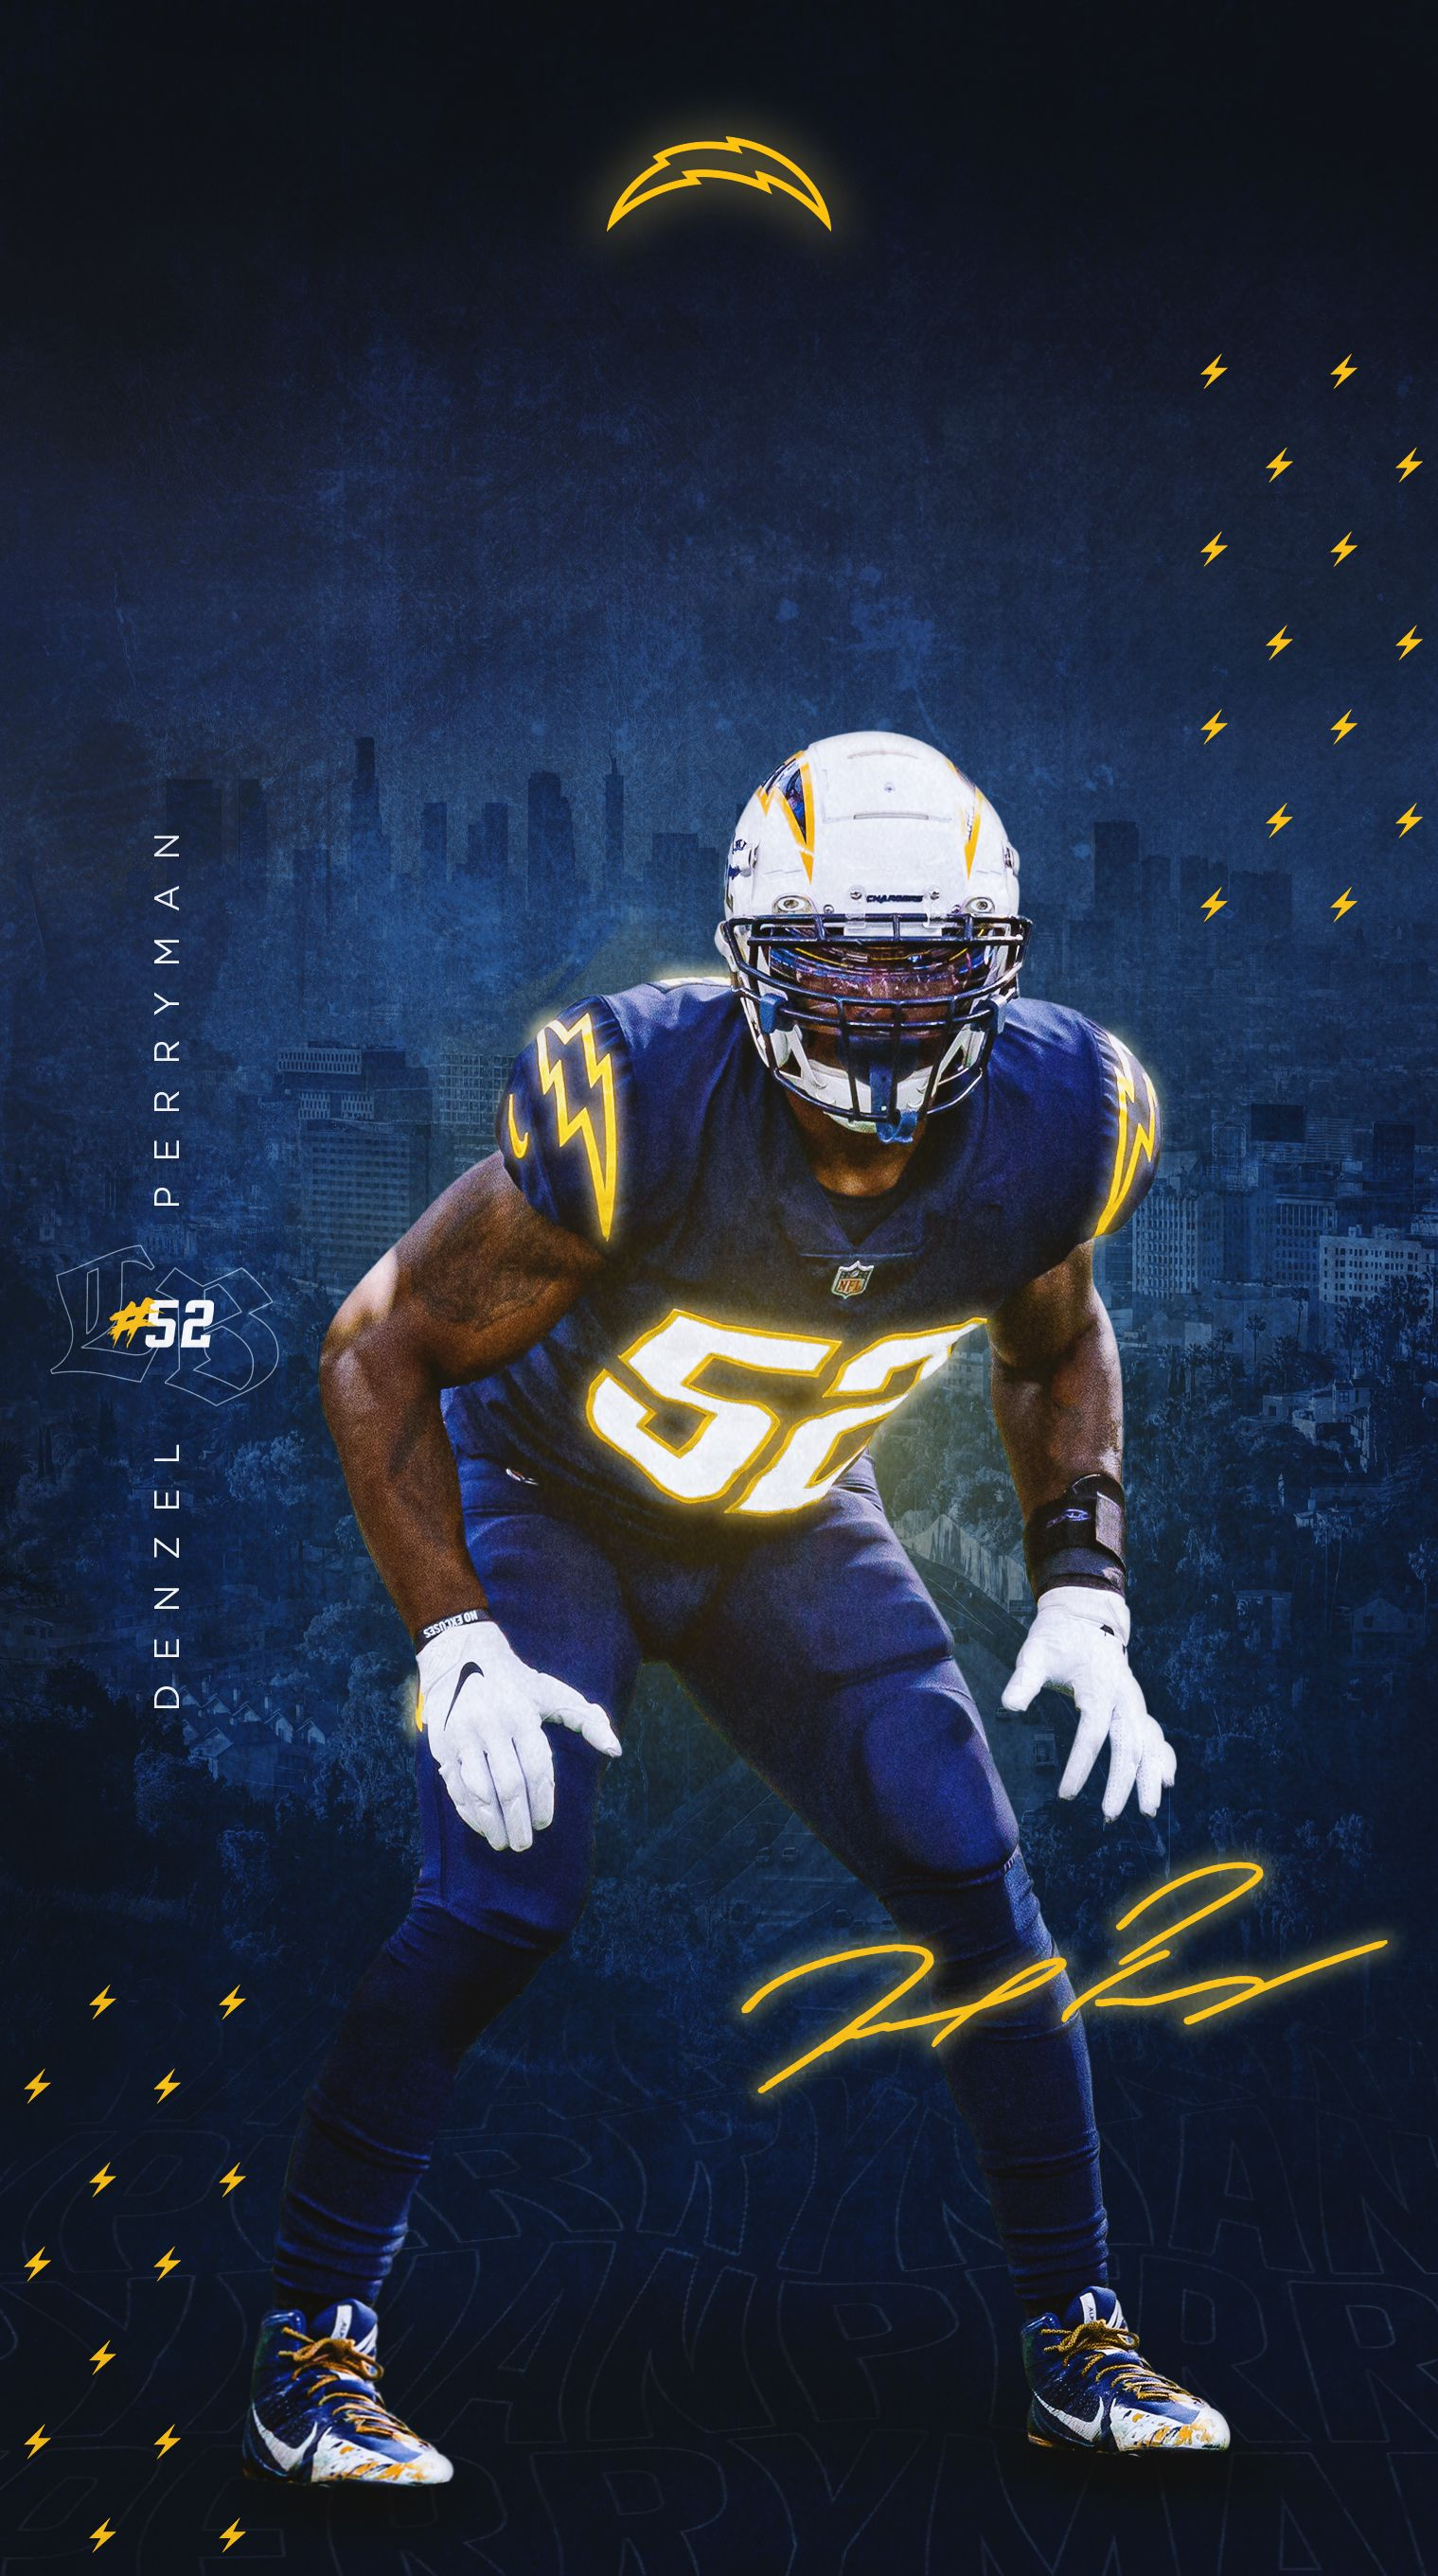 111120_Wallpaper_ColorRush_Navy-D_PERRYMAN